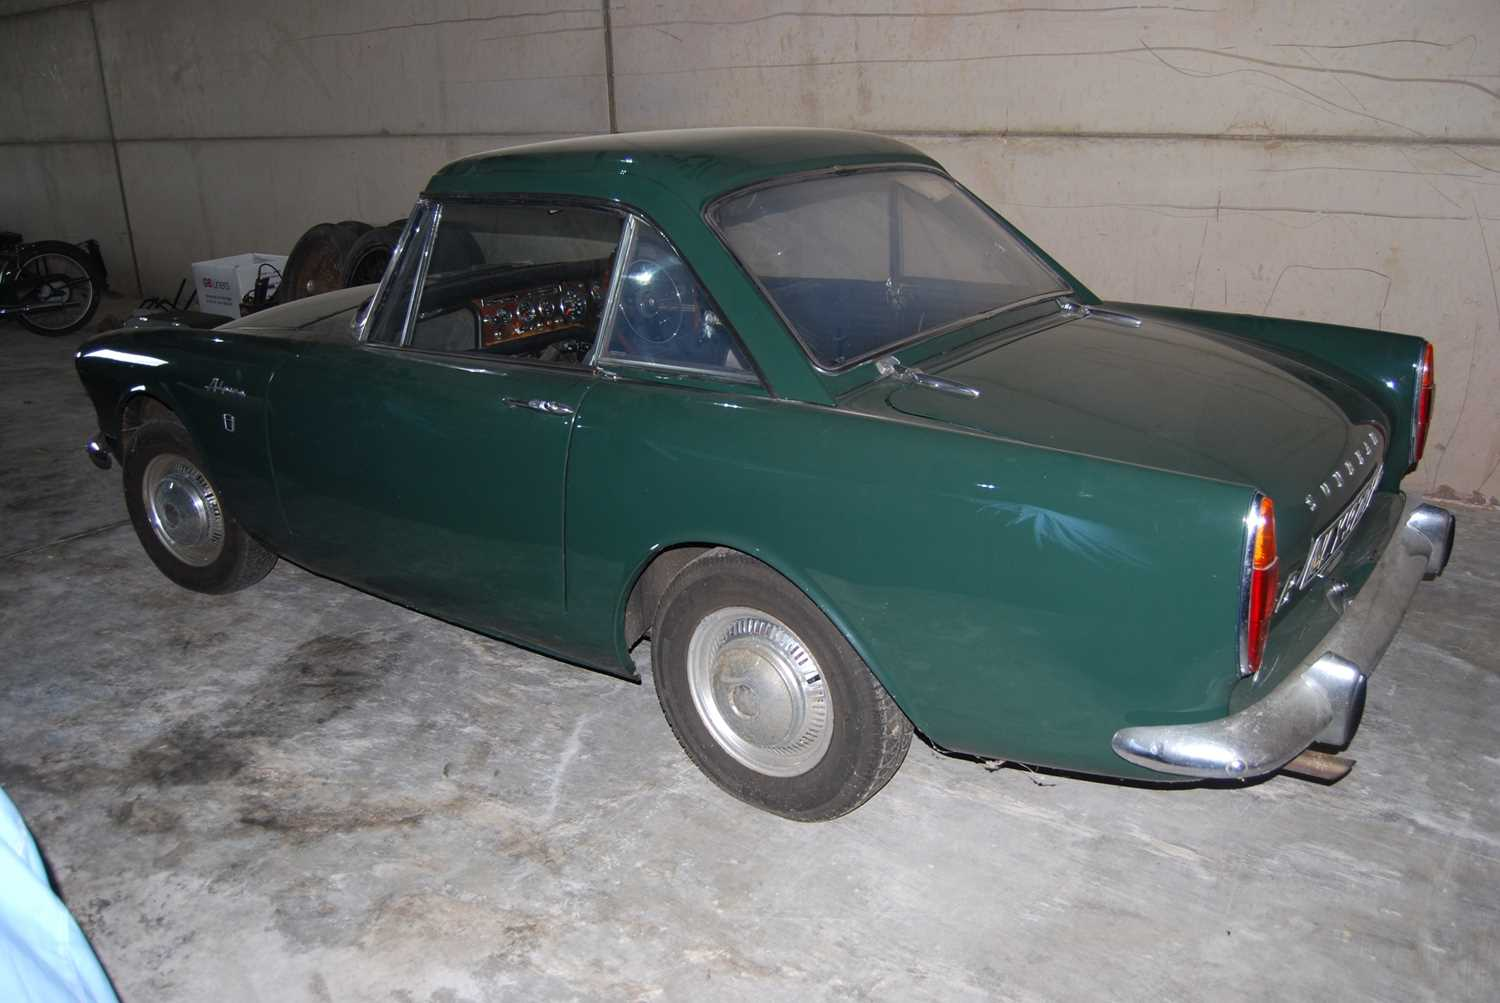 A 1968 Sunbeam Alpine Series V GT Reg No. NLY978F Chassis No. B395016307GTOD Green with Black - Image 8 of 43